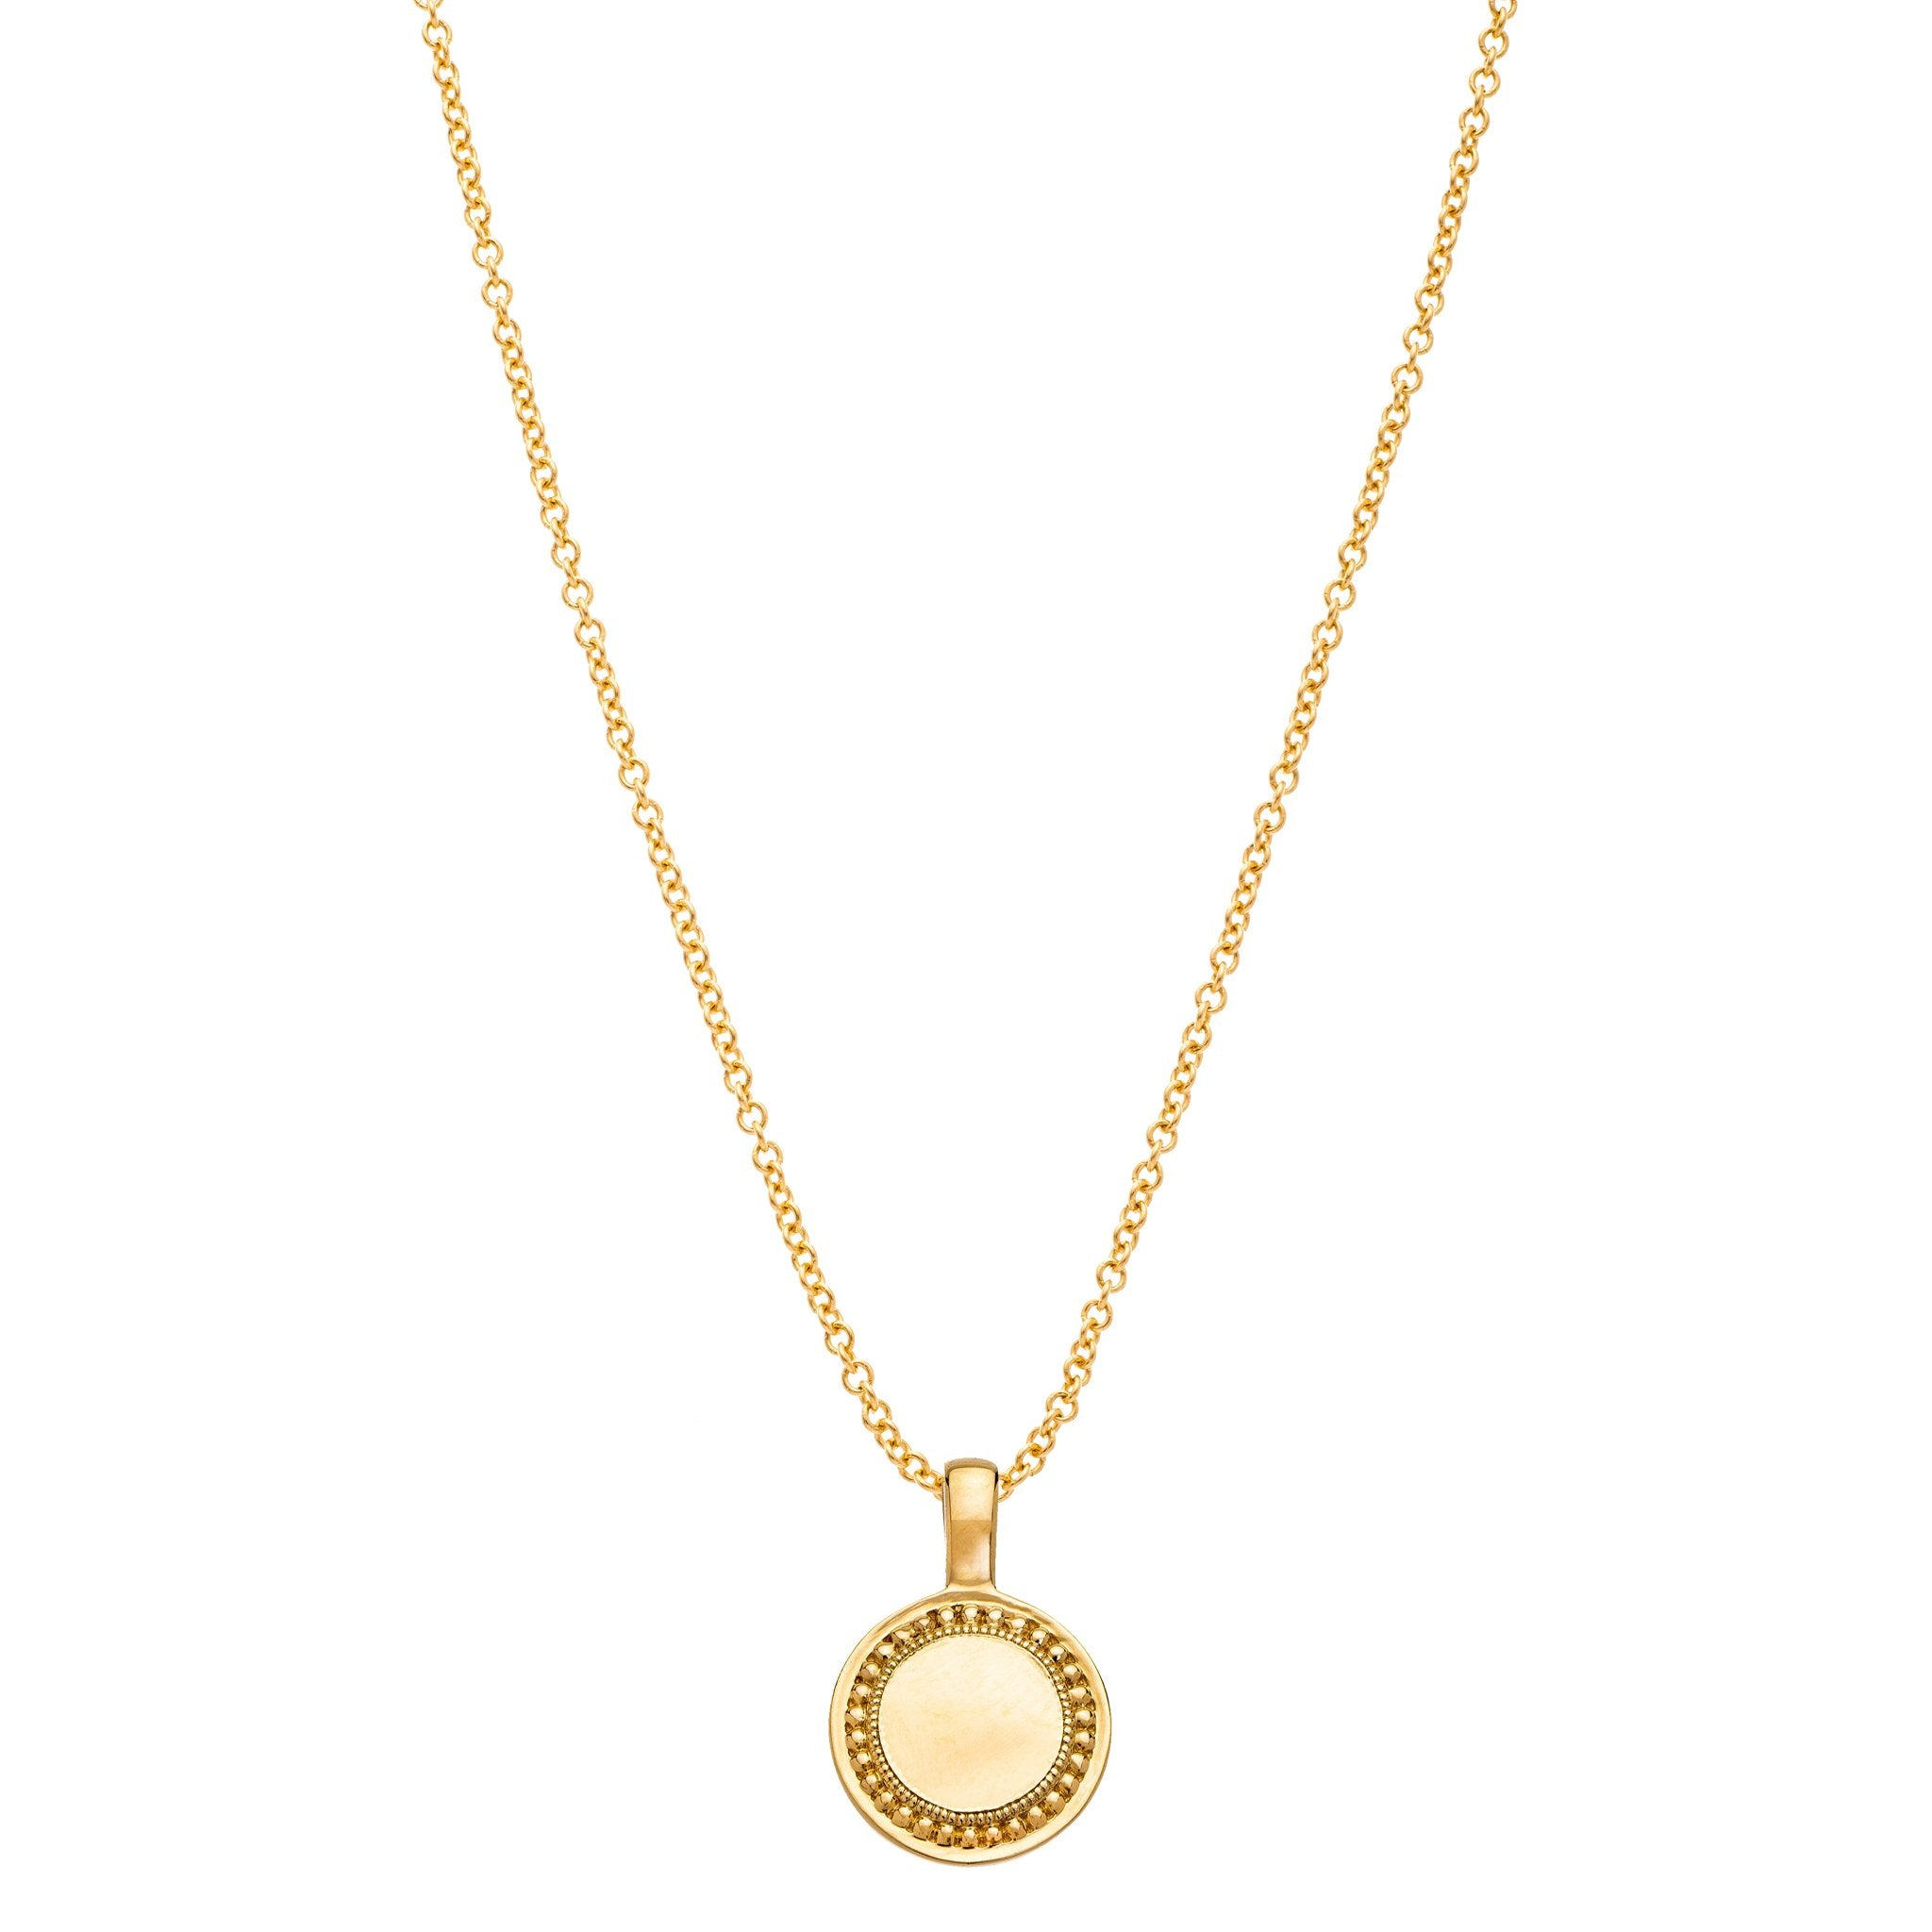 The P.S. Round Charm with Oval Link Chain